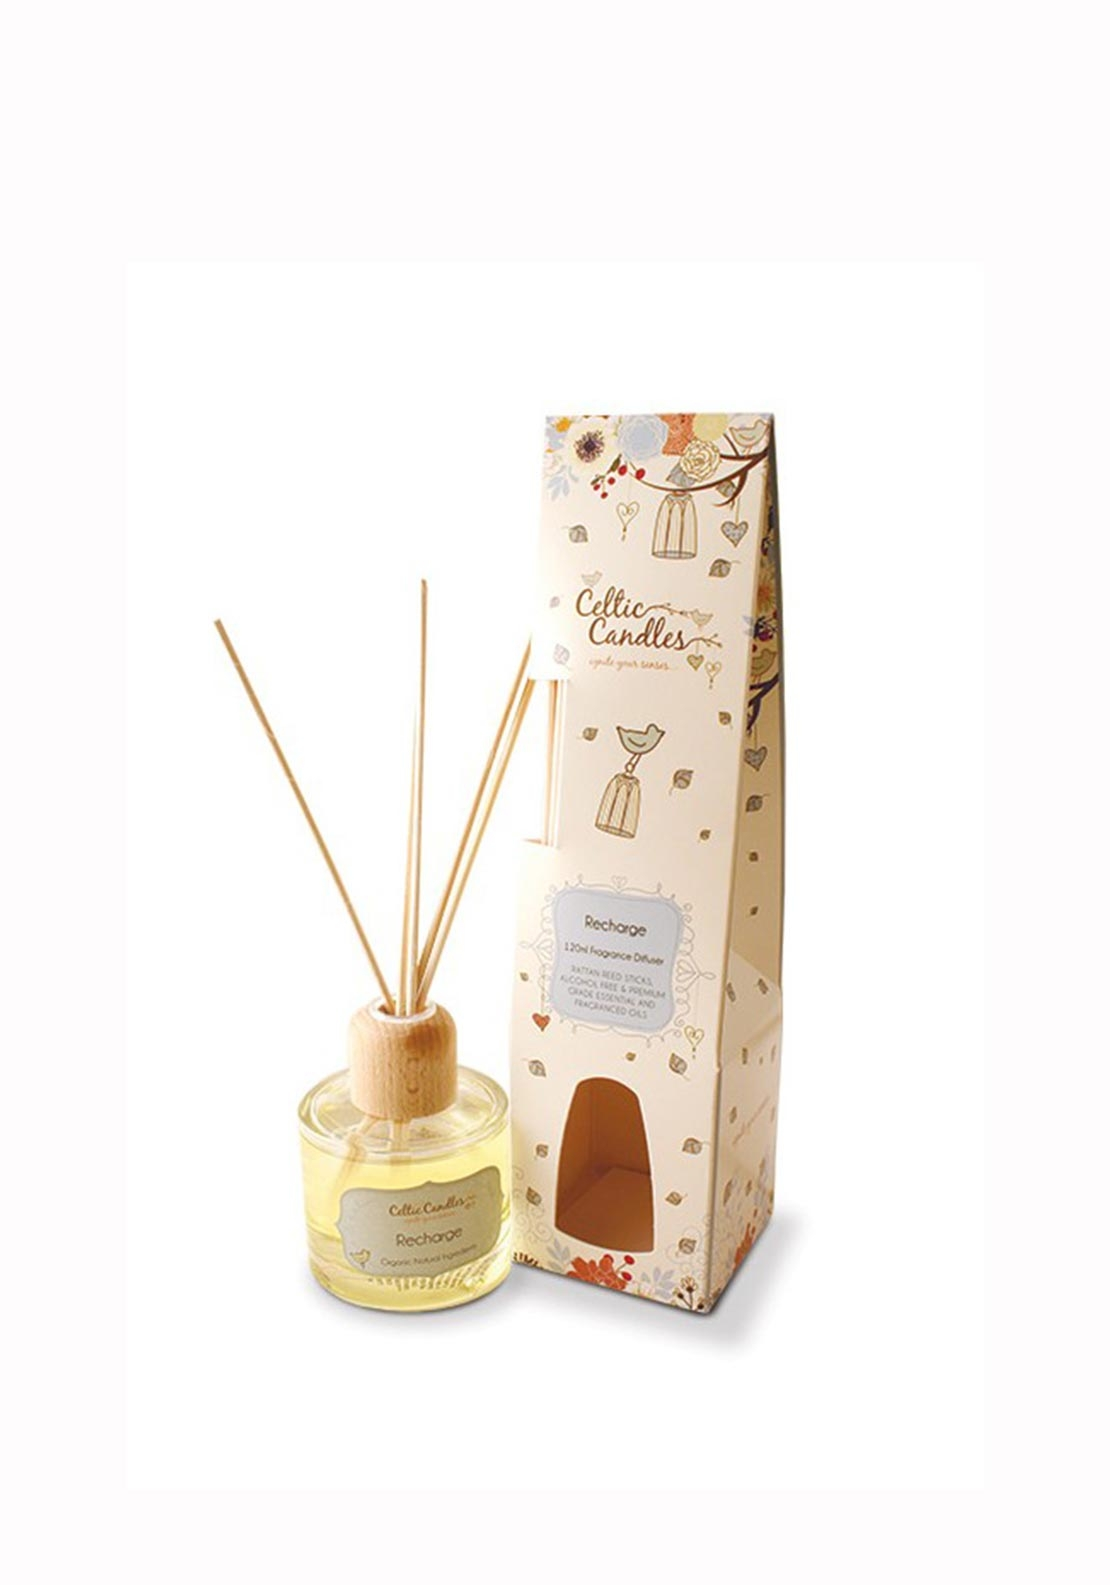 Celtic Candles Recharge Reed Diffuser, 100ml